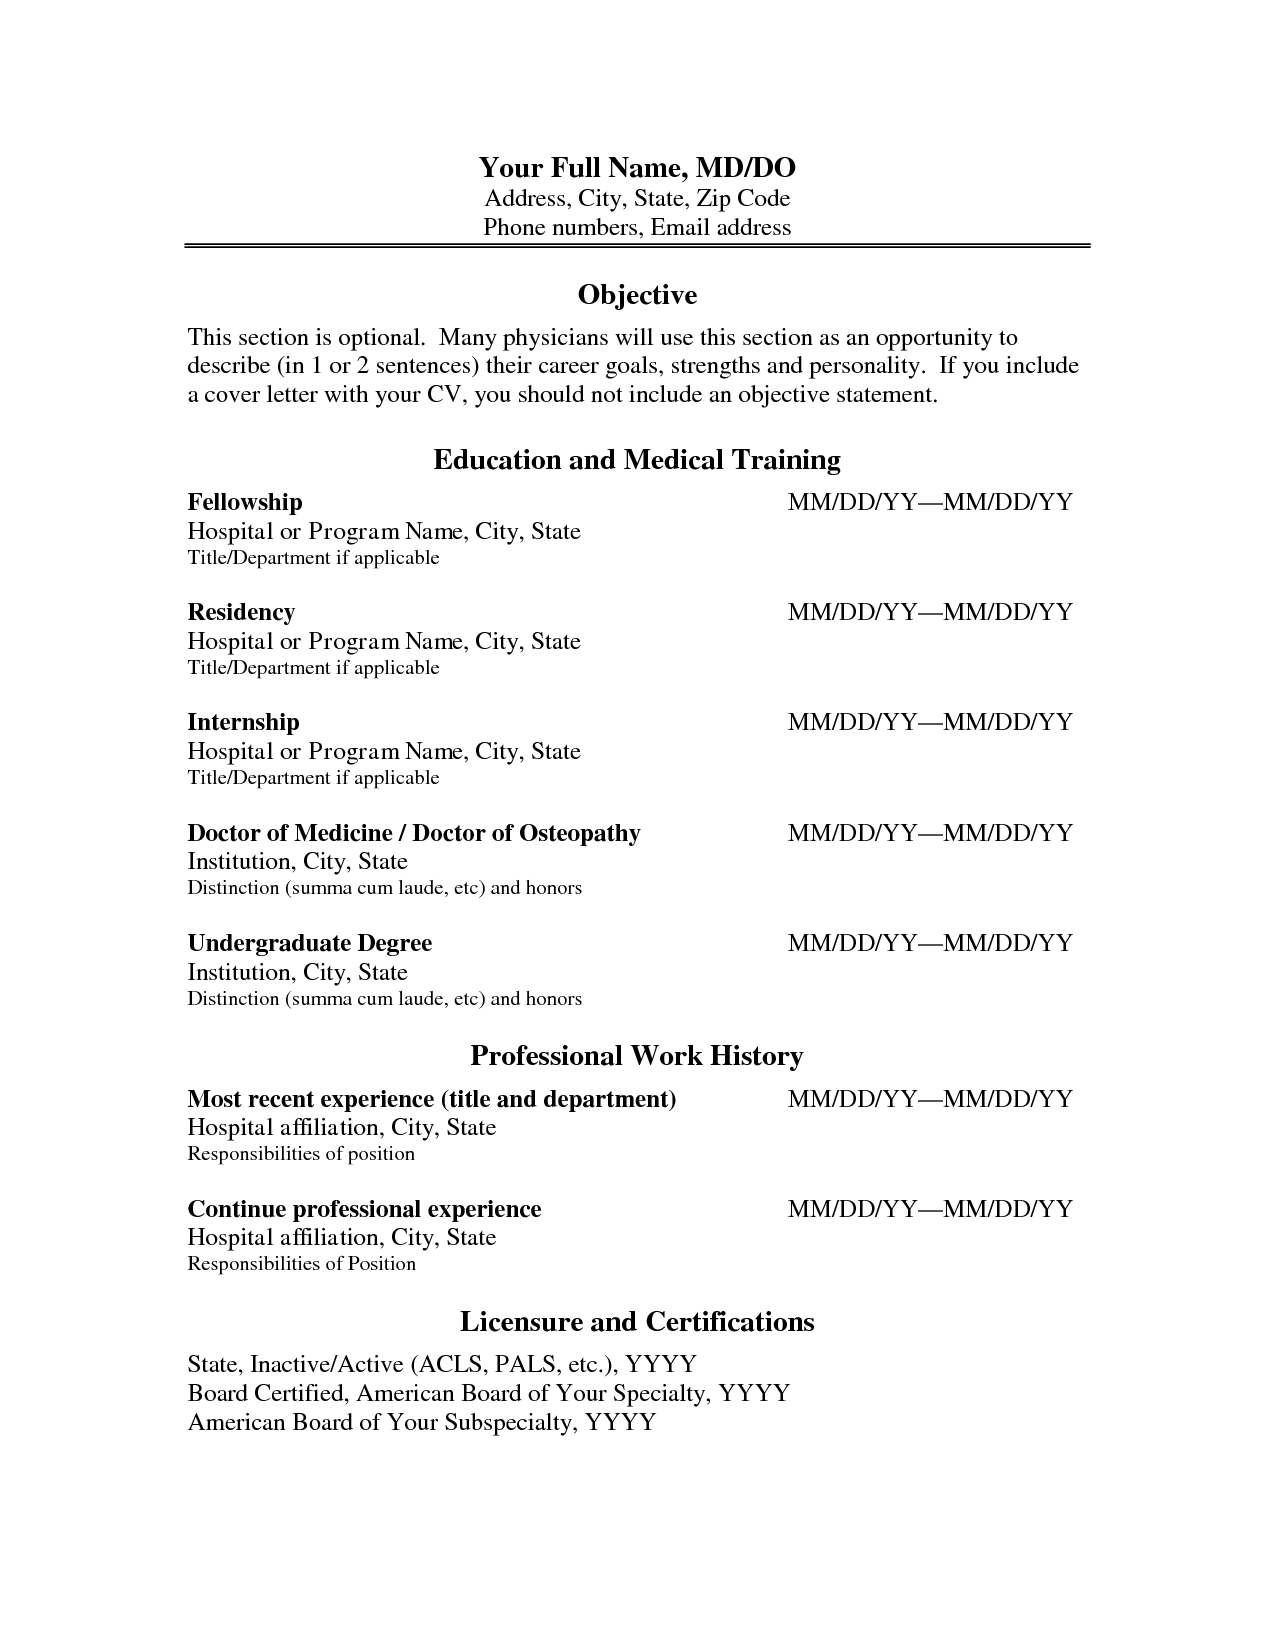 Physician Assistant Resume Template | Resume Templates and Resume ...